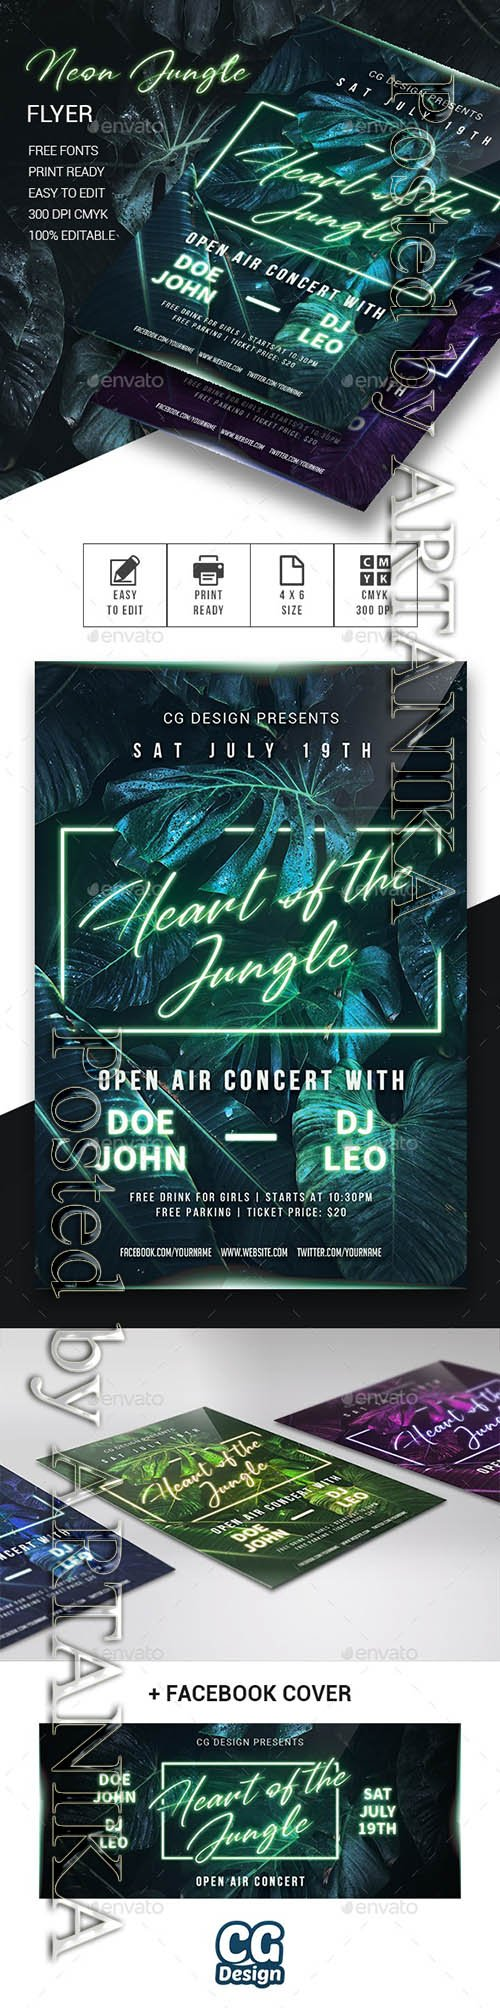 Neon Jungle Flyer 23969428